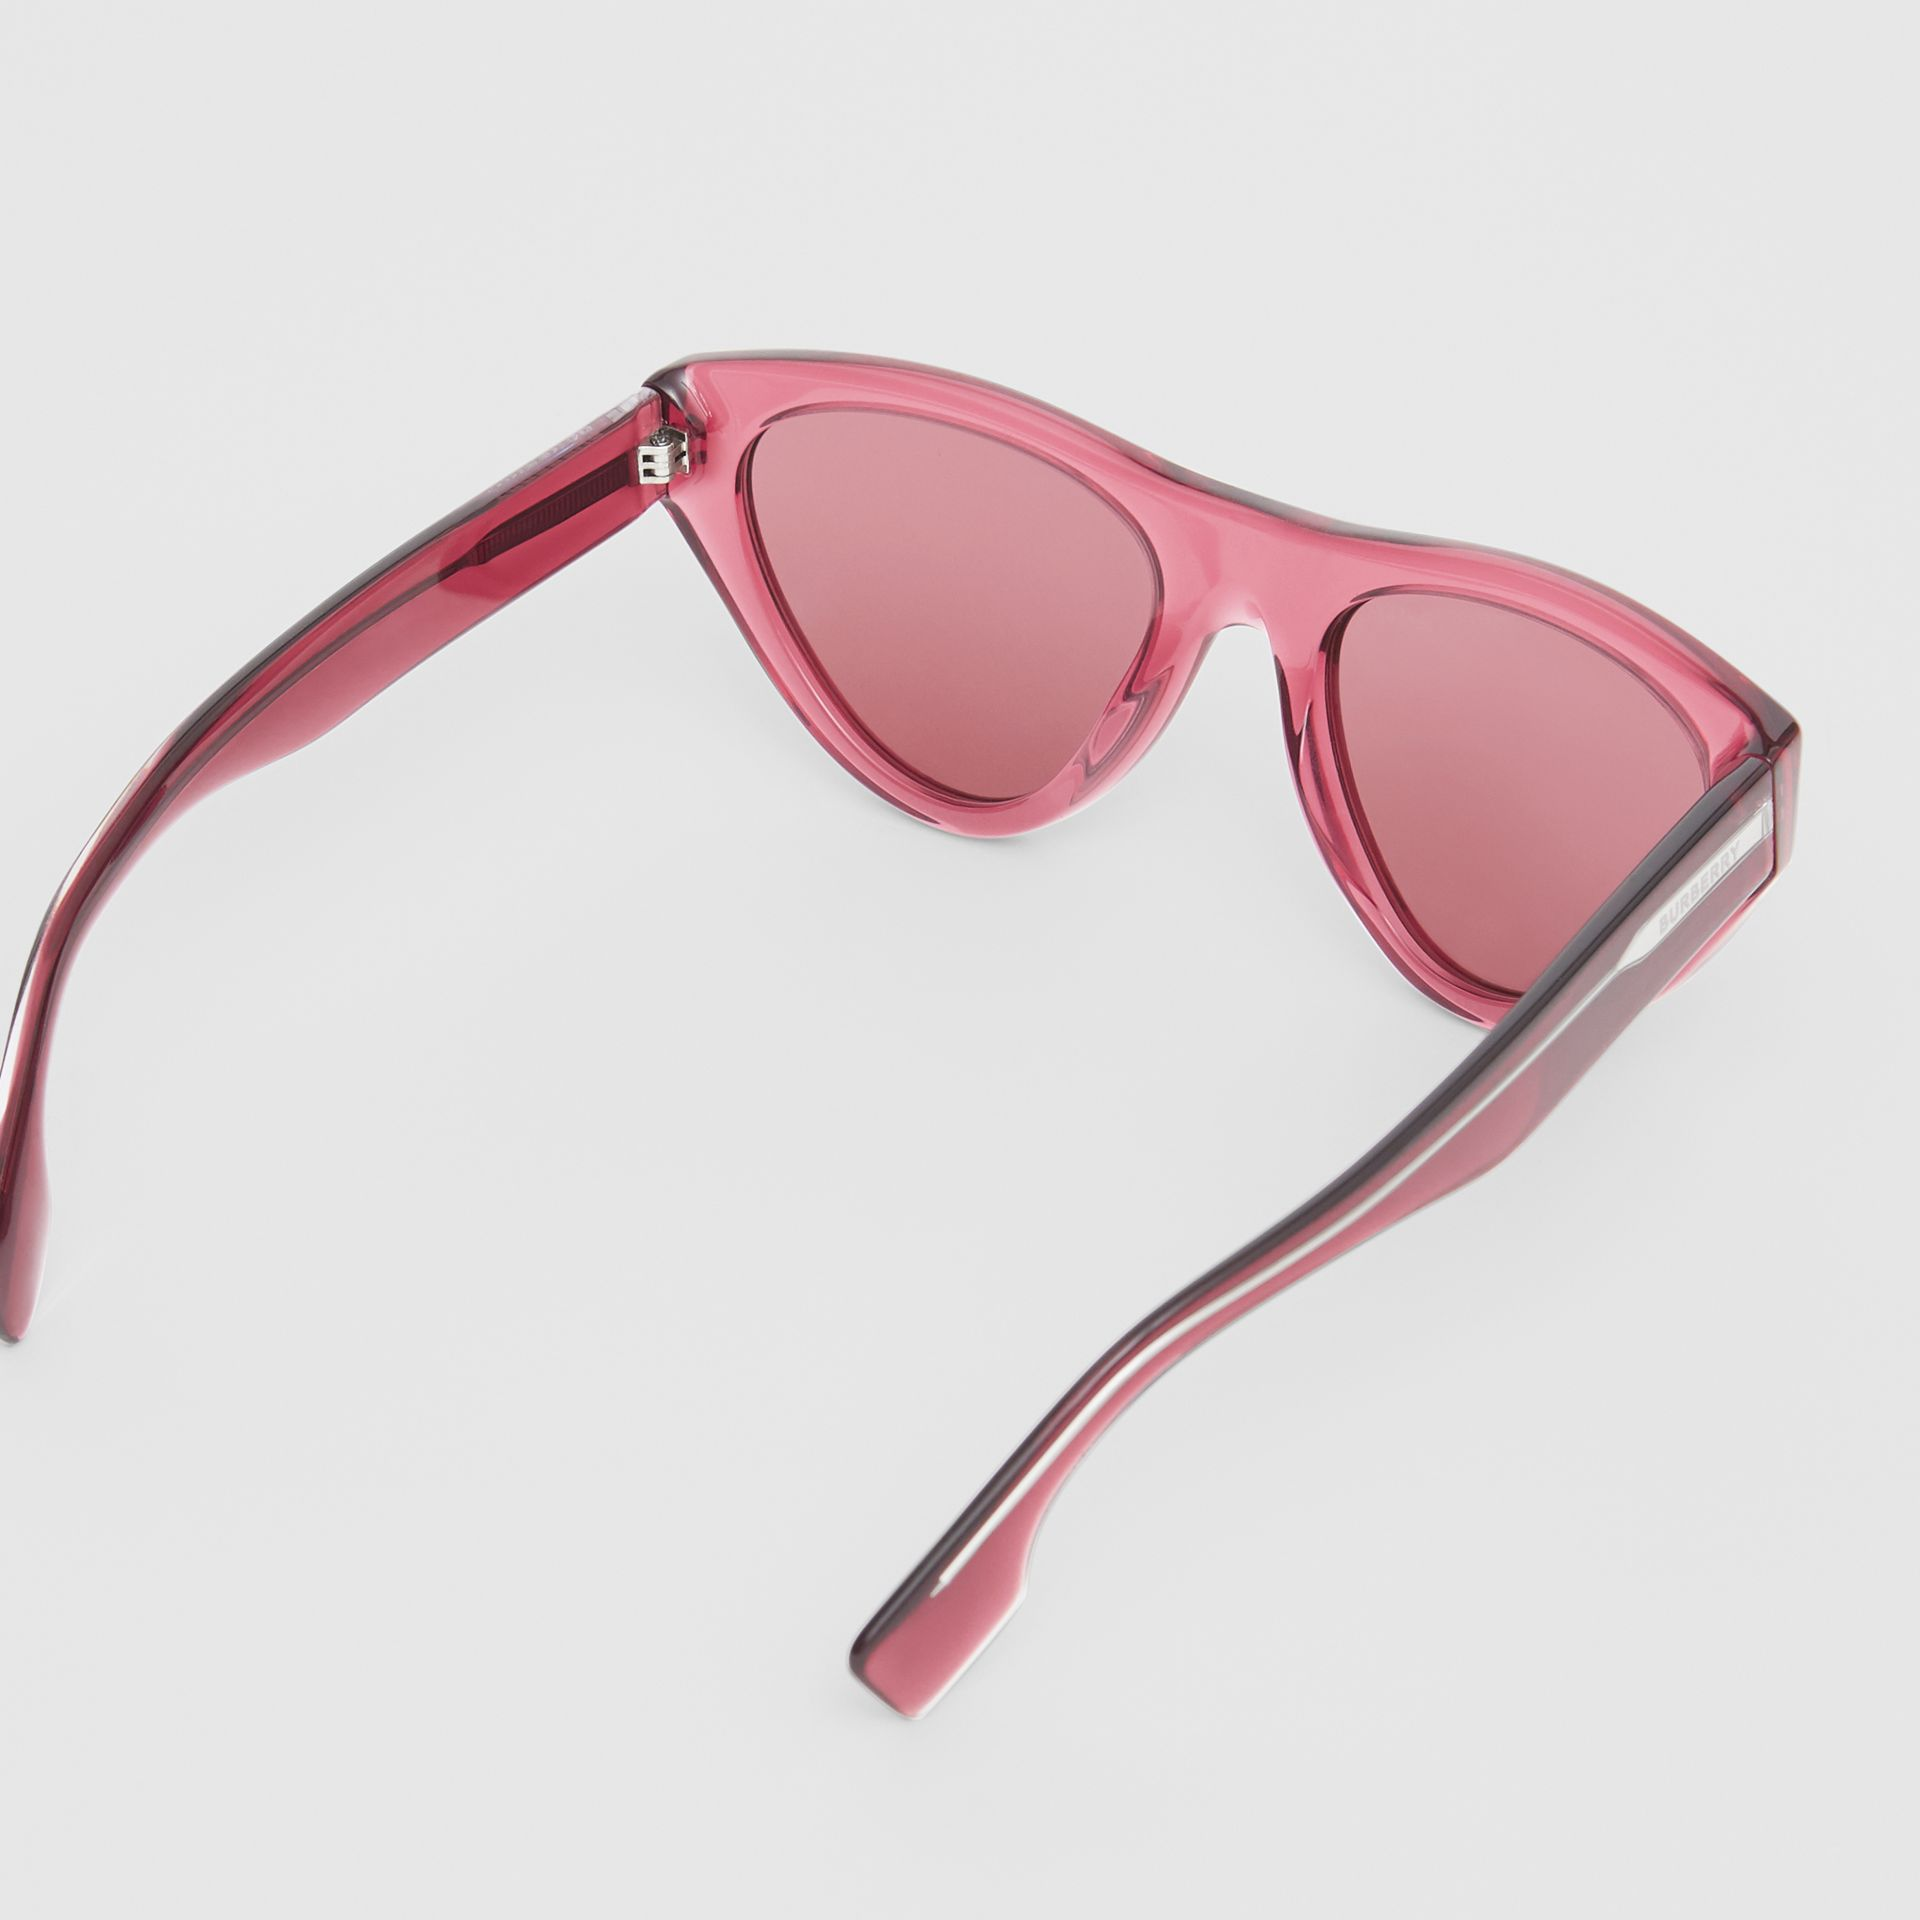 Triangular Frame Sunglasses in Cranberry - Women | Burberry United Kingdom - gallery image 4